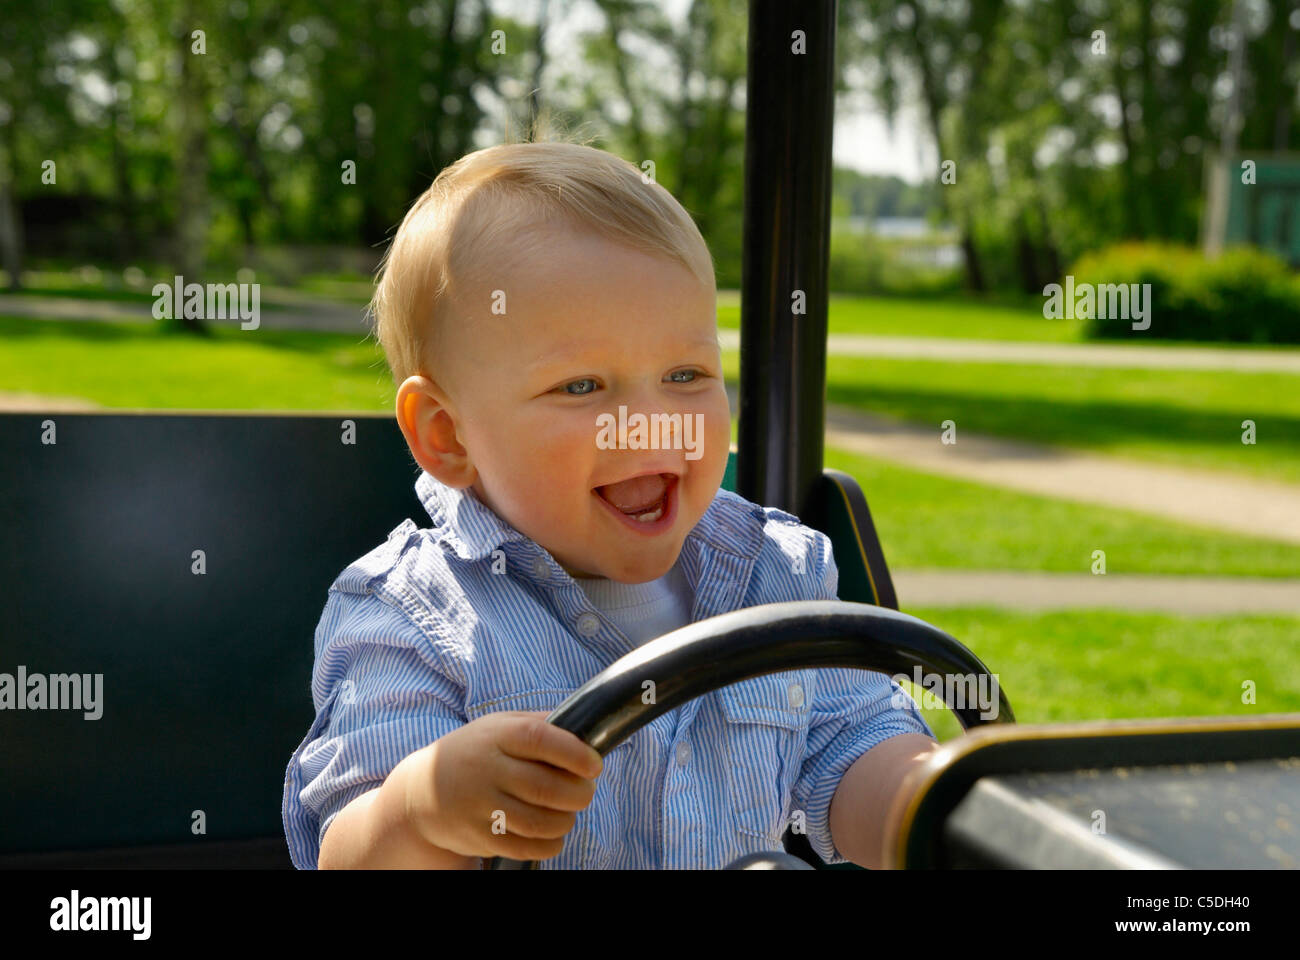 Happy little boy driving cropped toy car in the playground - Stock Image